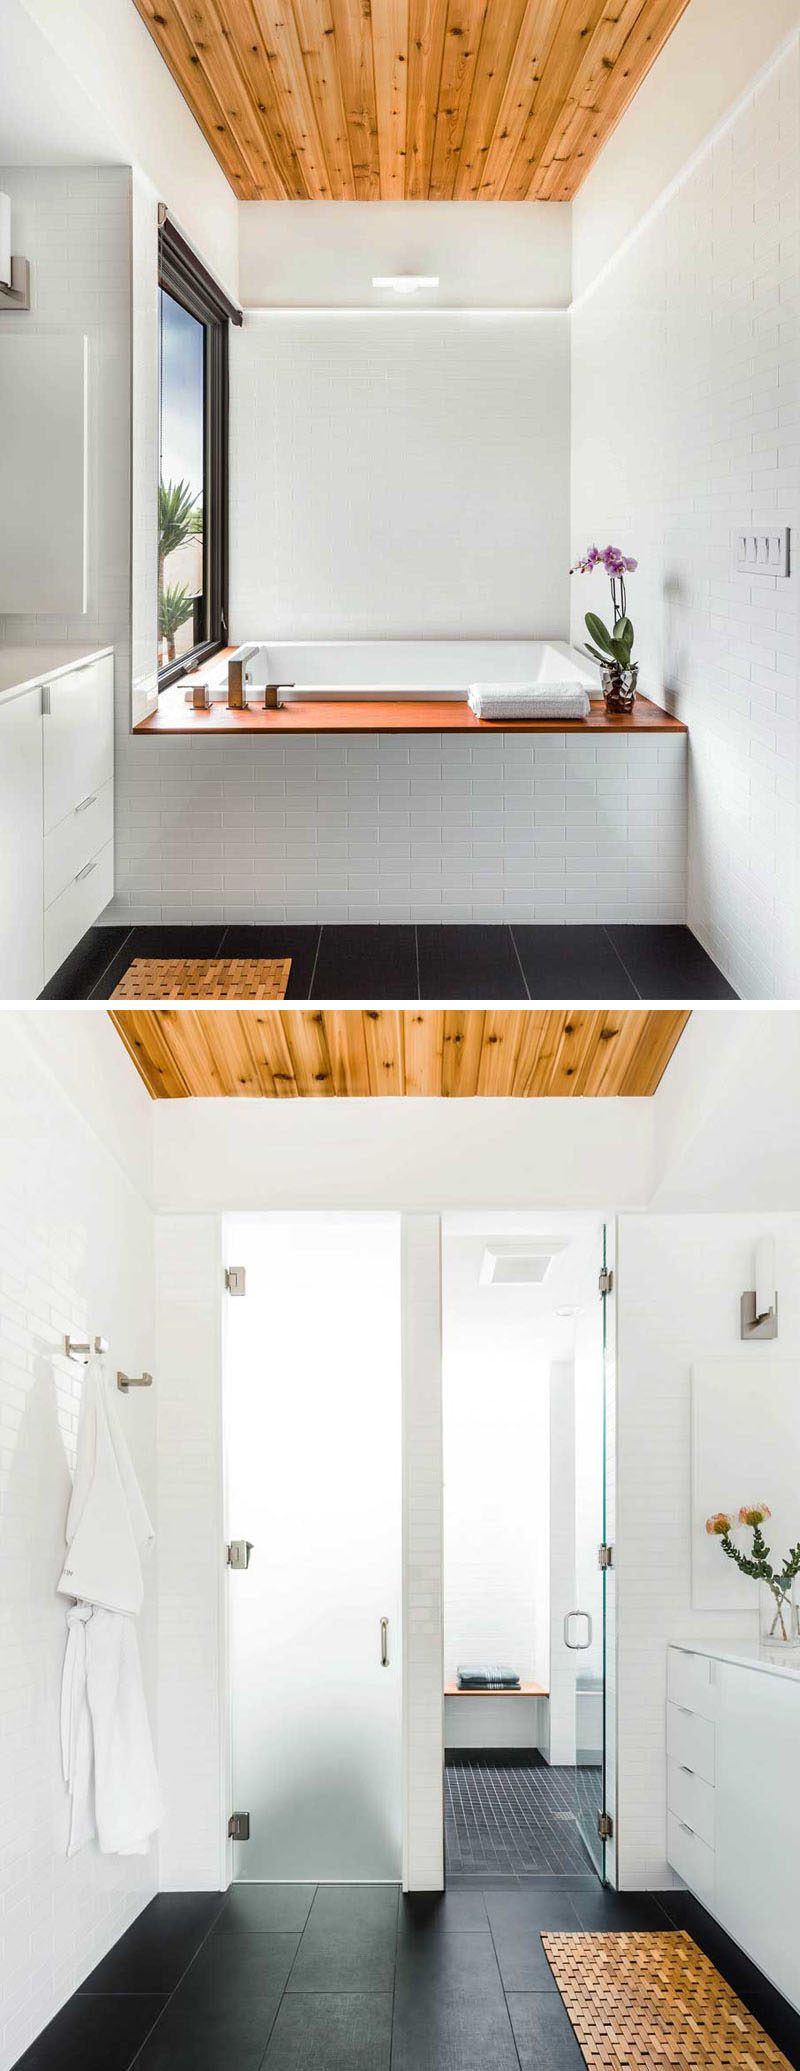 Bathroom Design Idea - Create a Spa-Like Bathroom At Home // Include crisp white walls and touches of wood.